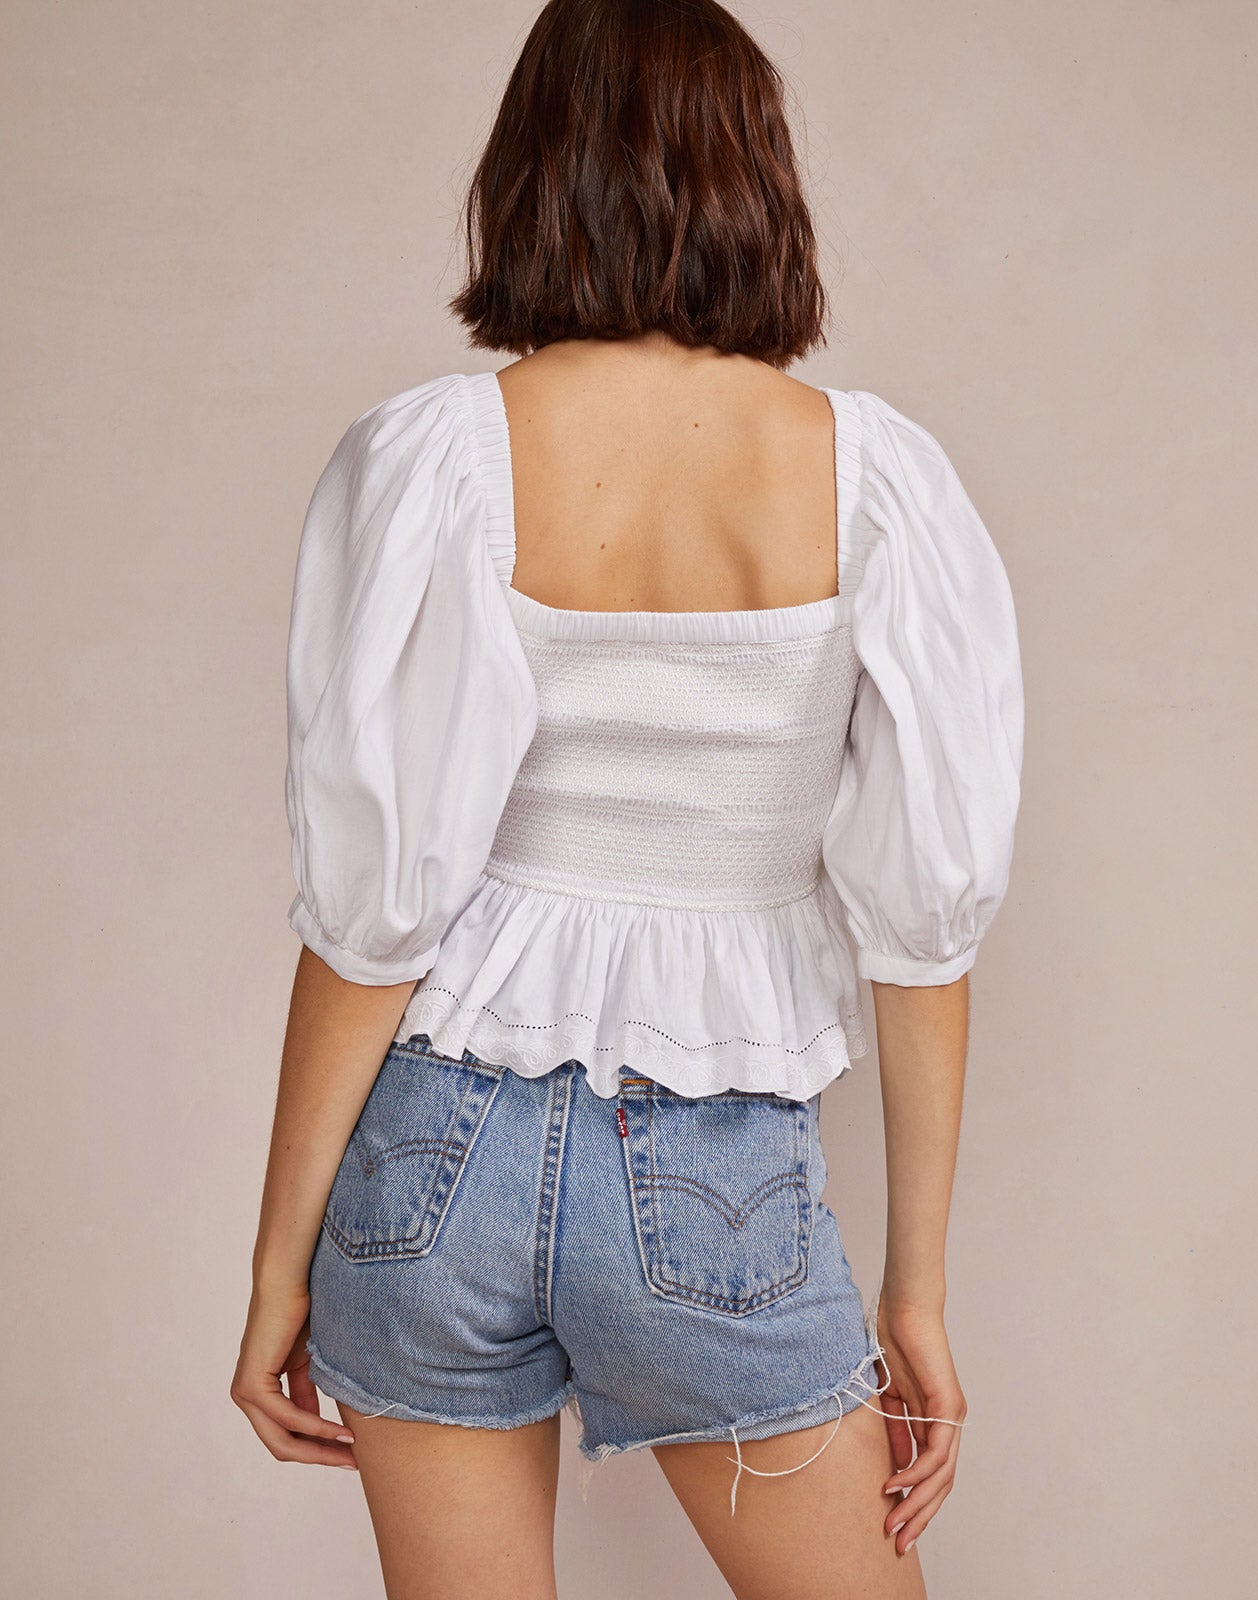 Alternate back view model wearing Lily Smocked Top